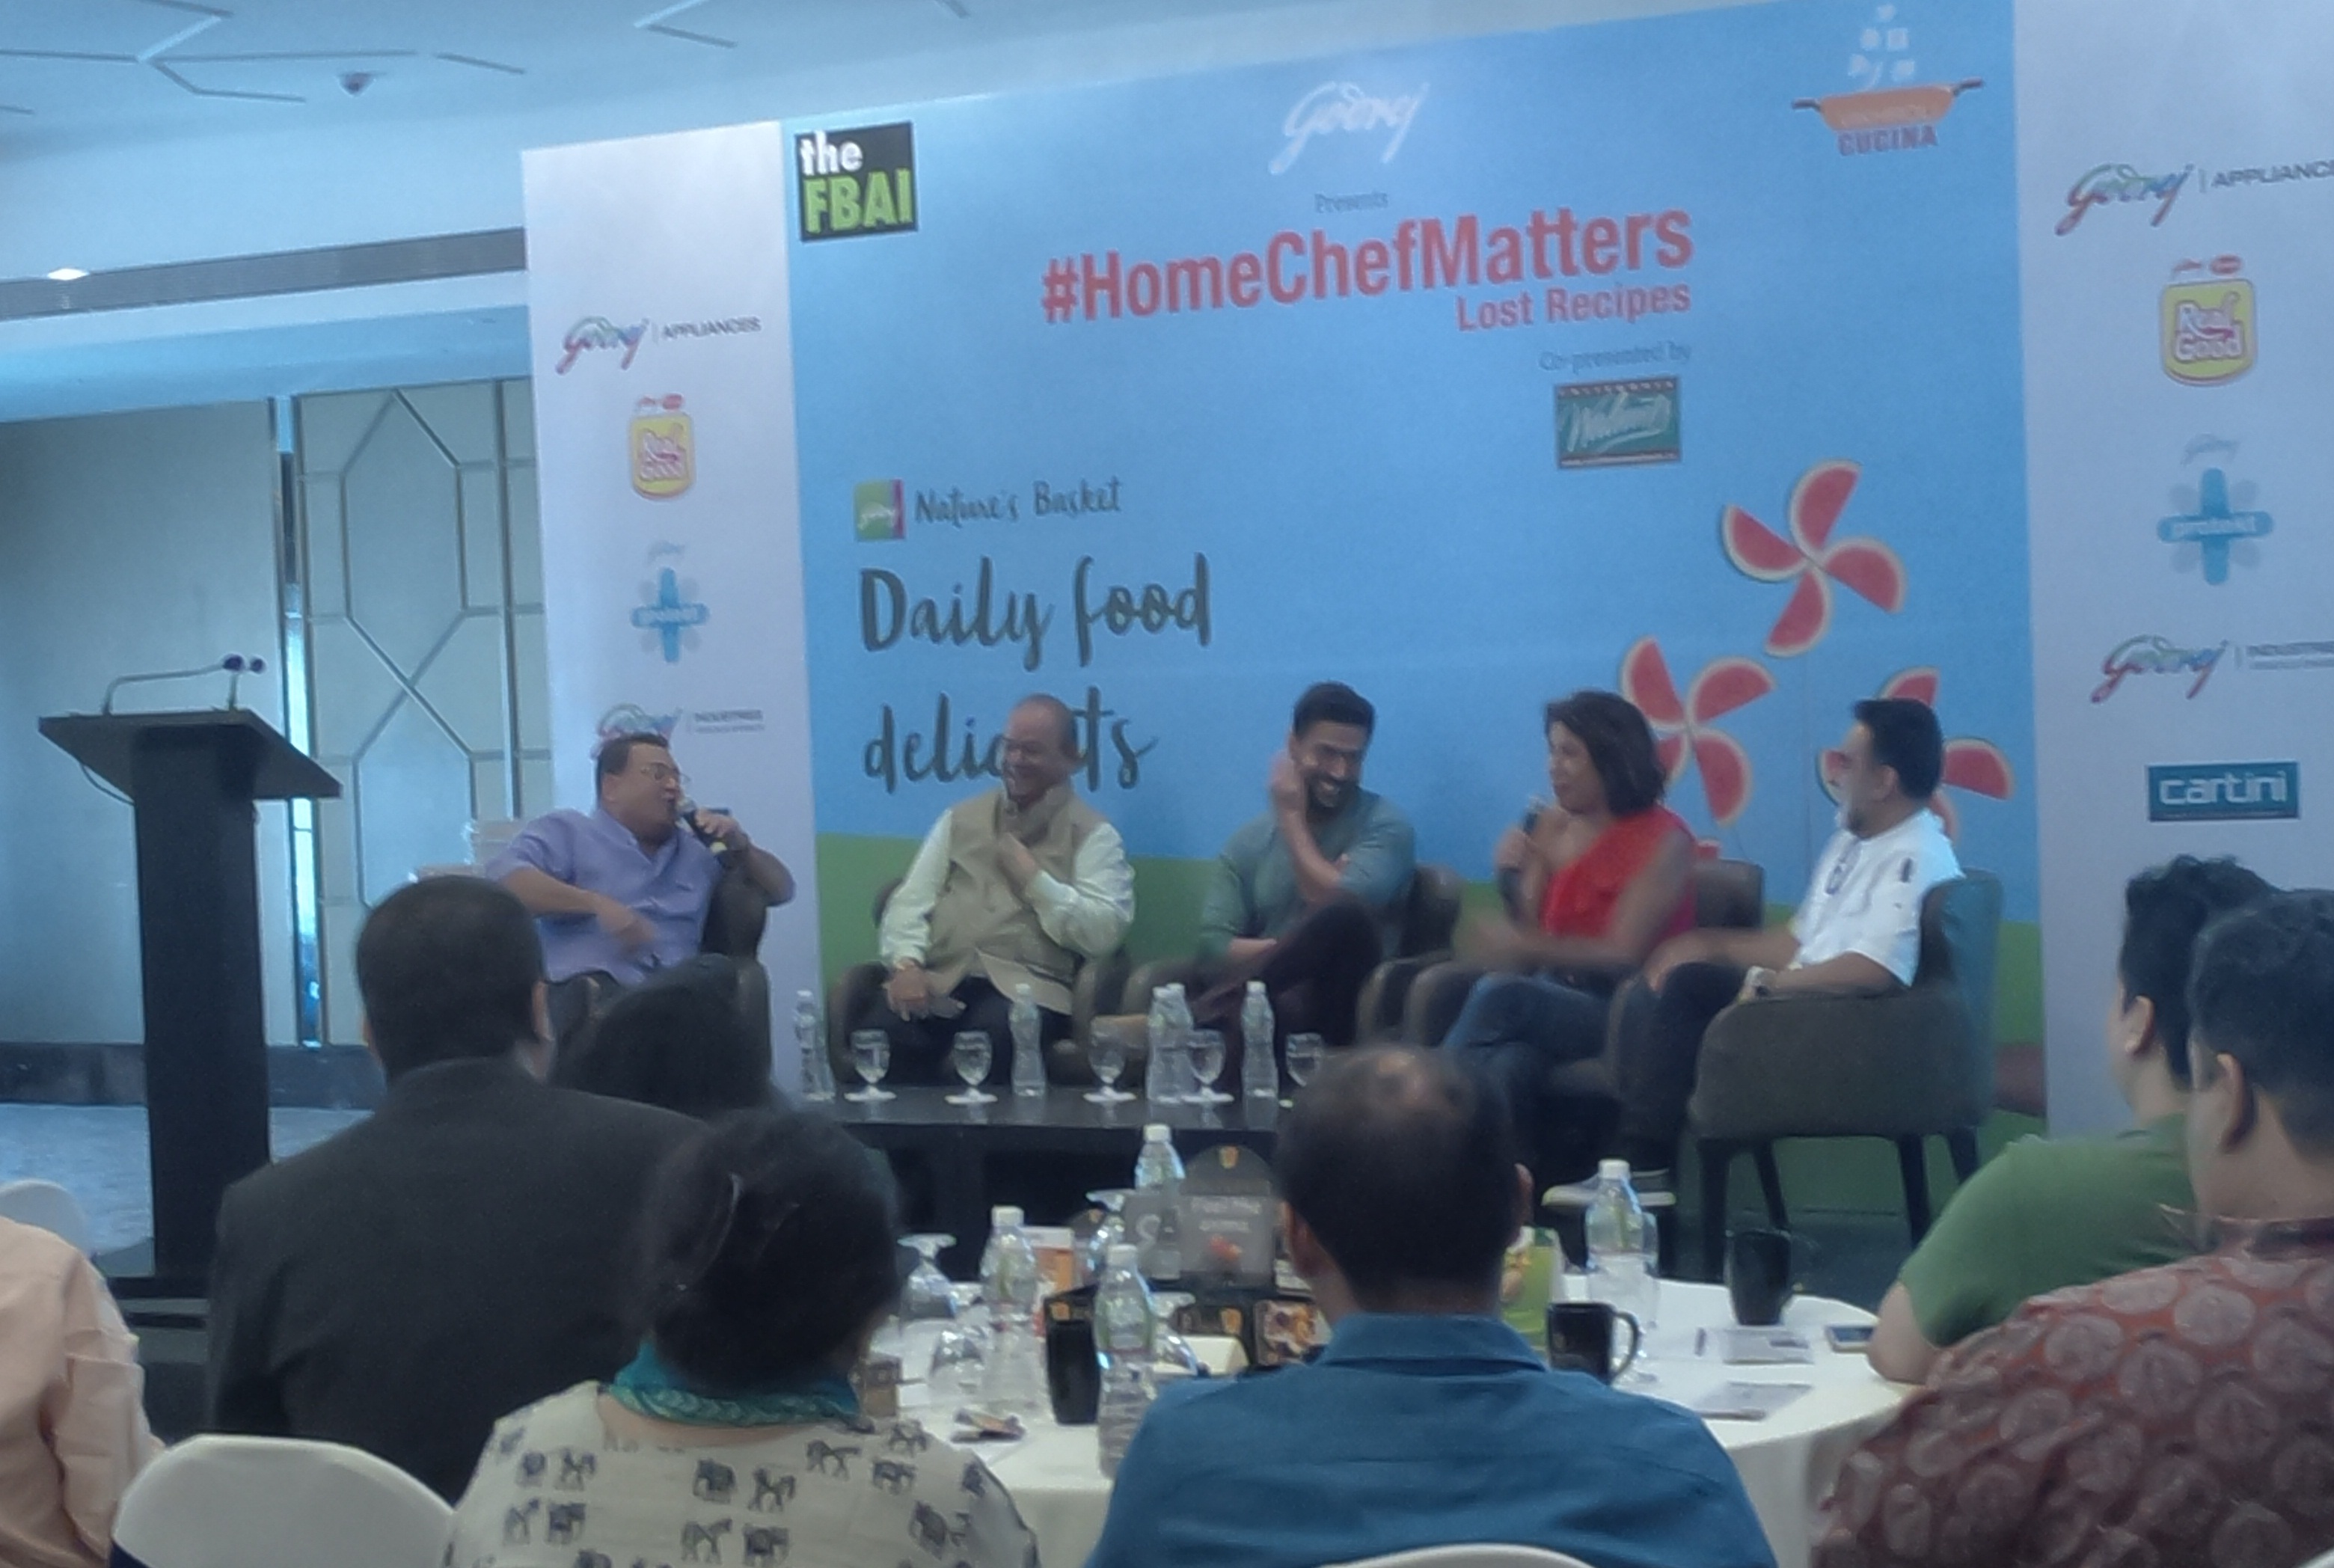 HomeChefMatters ,a unique conference for Home-chefs challenges opportunities latest trends and lost recipes